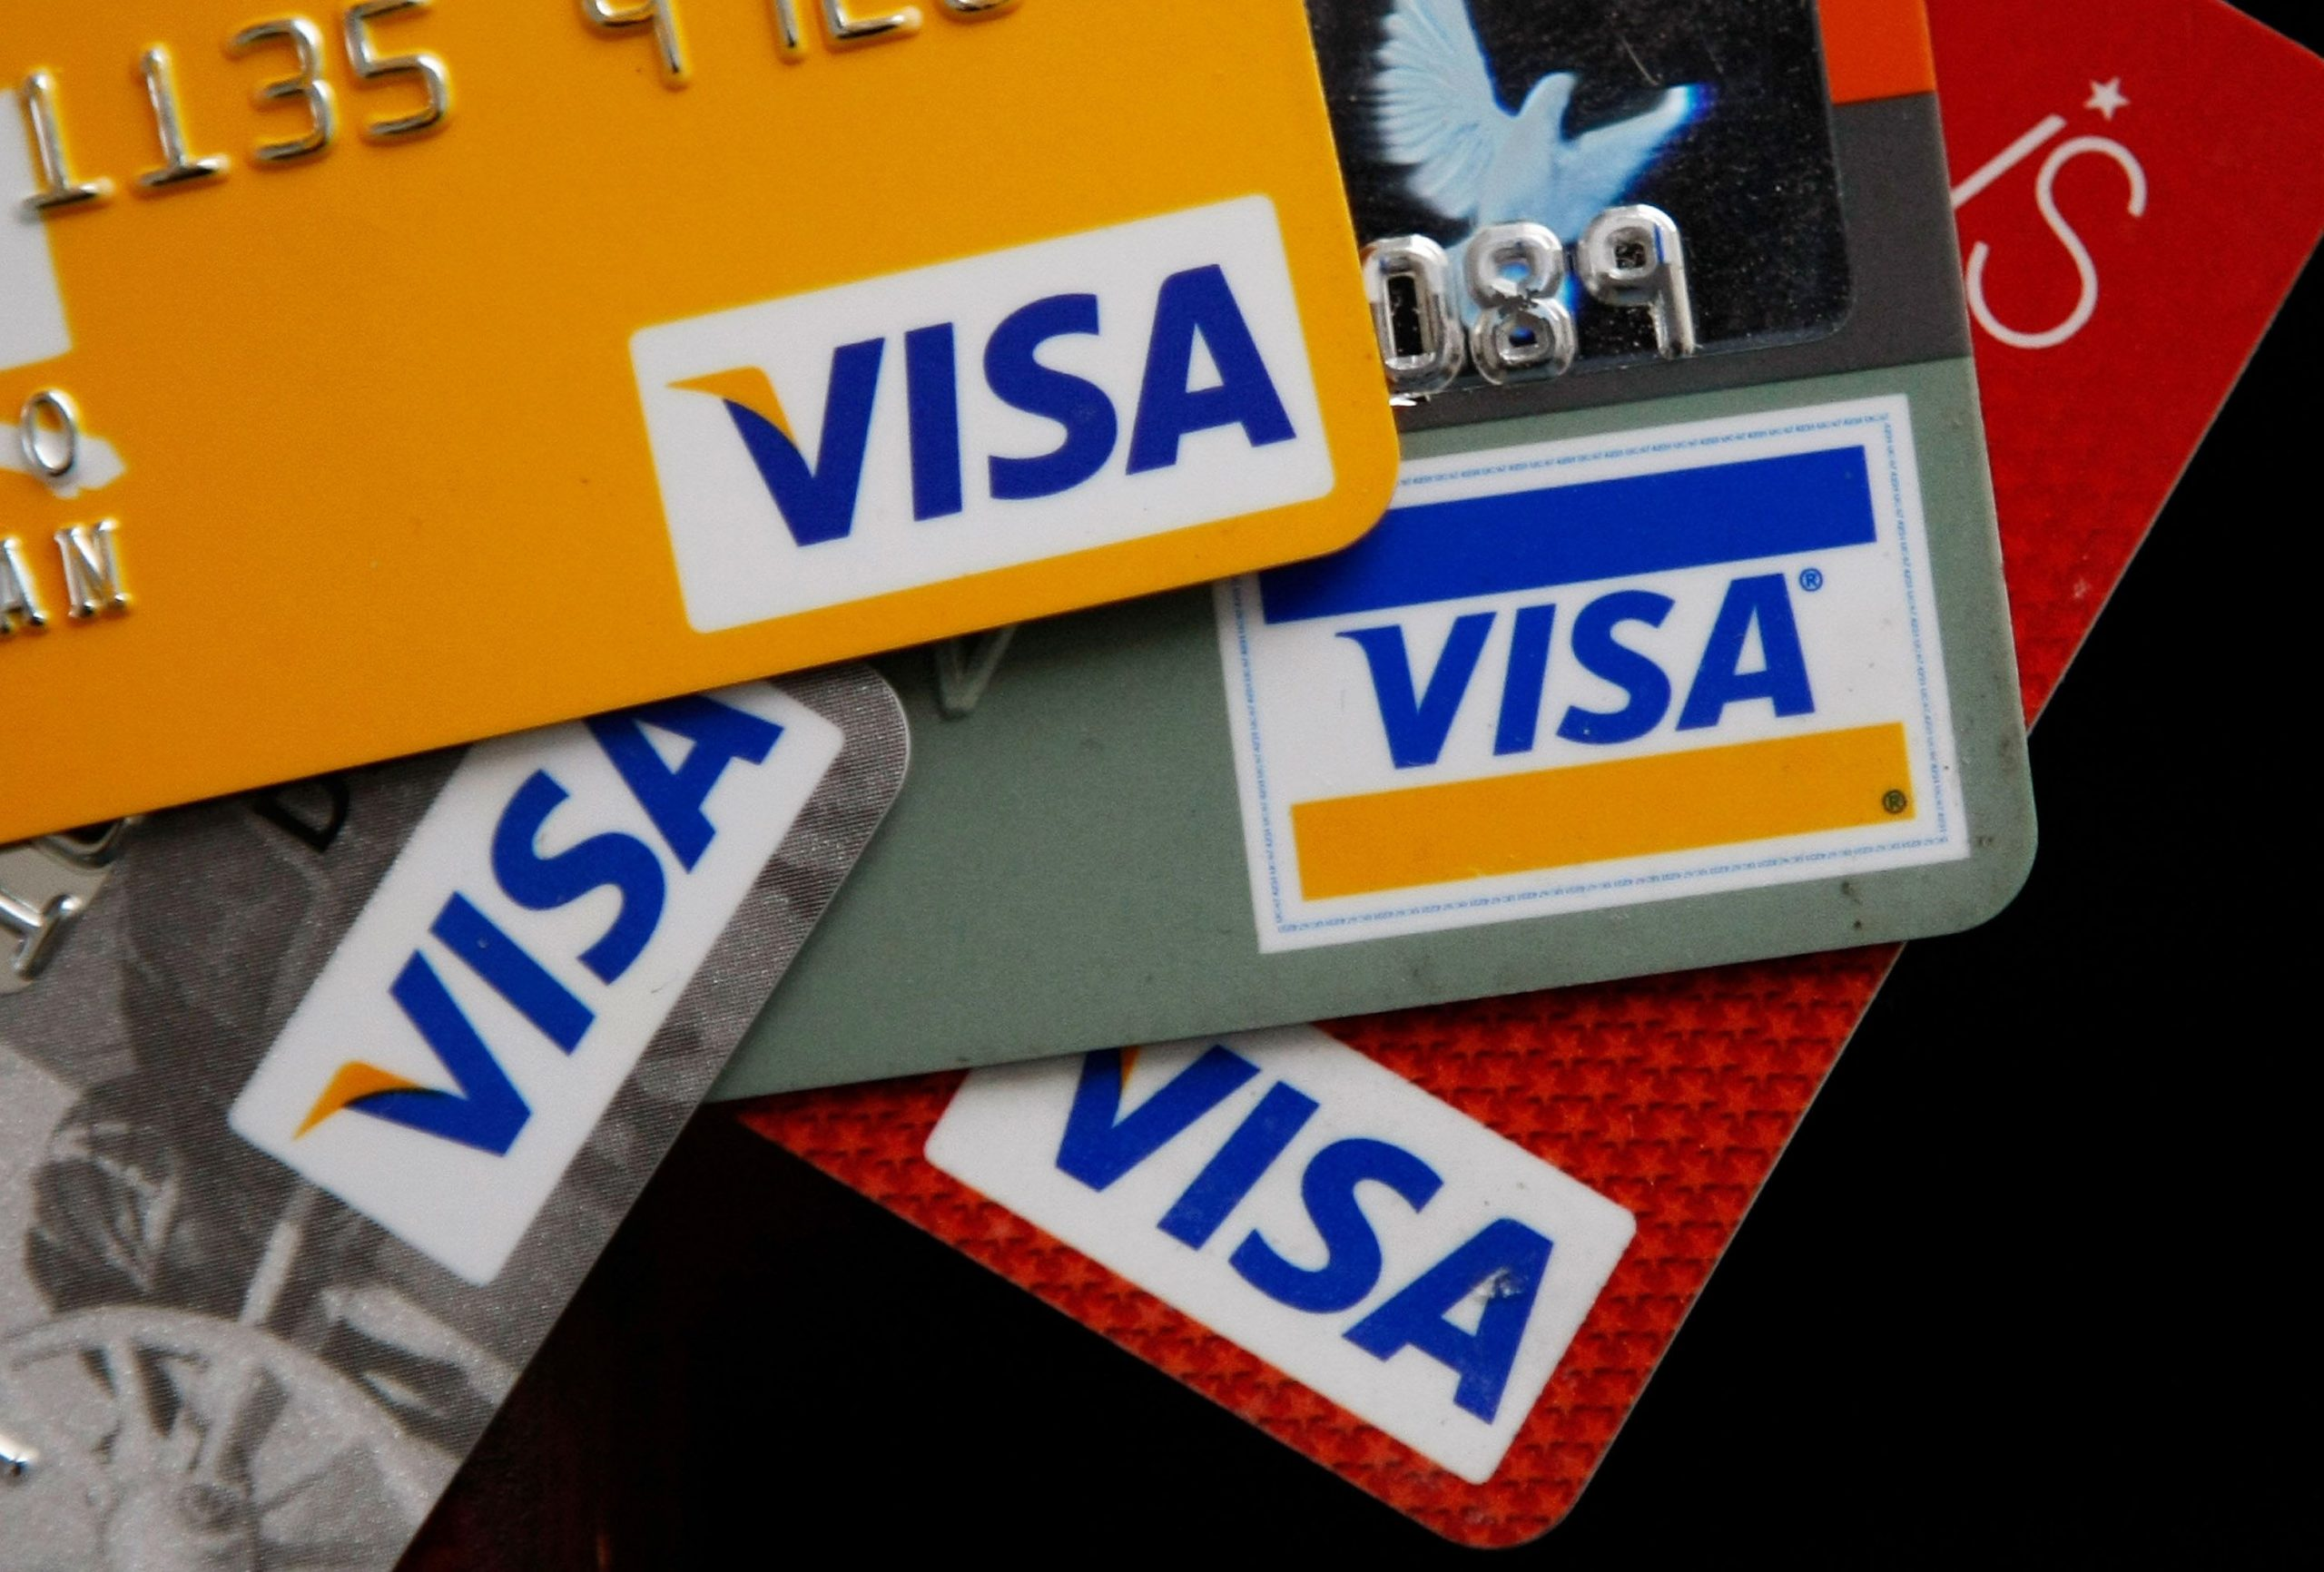 Use your pre-paid debit cards if you want to accomplish your money transfer.